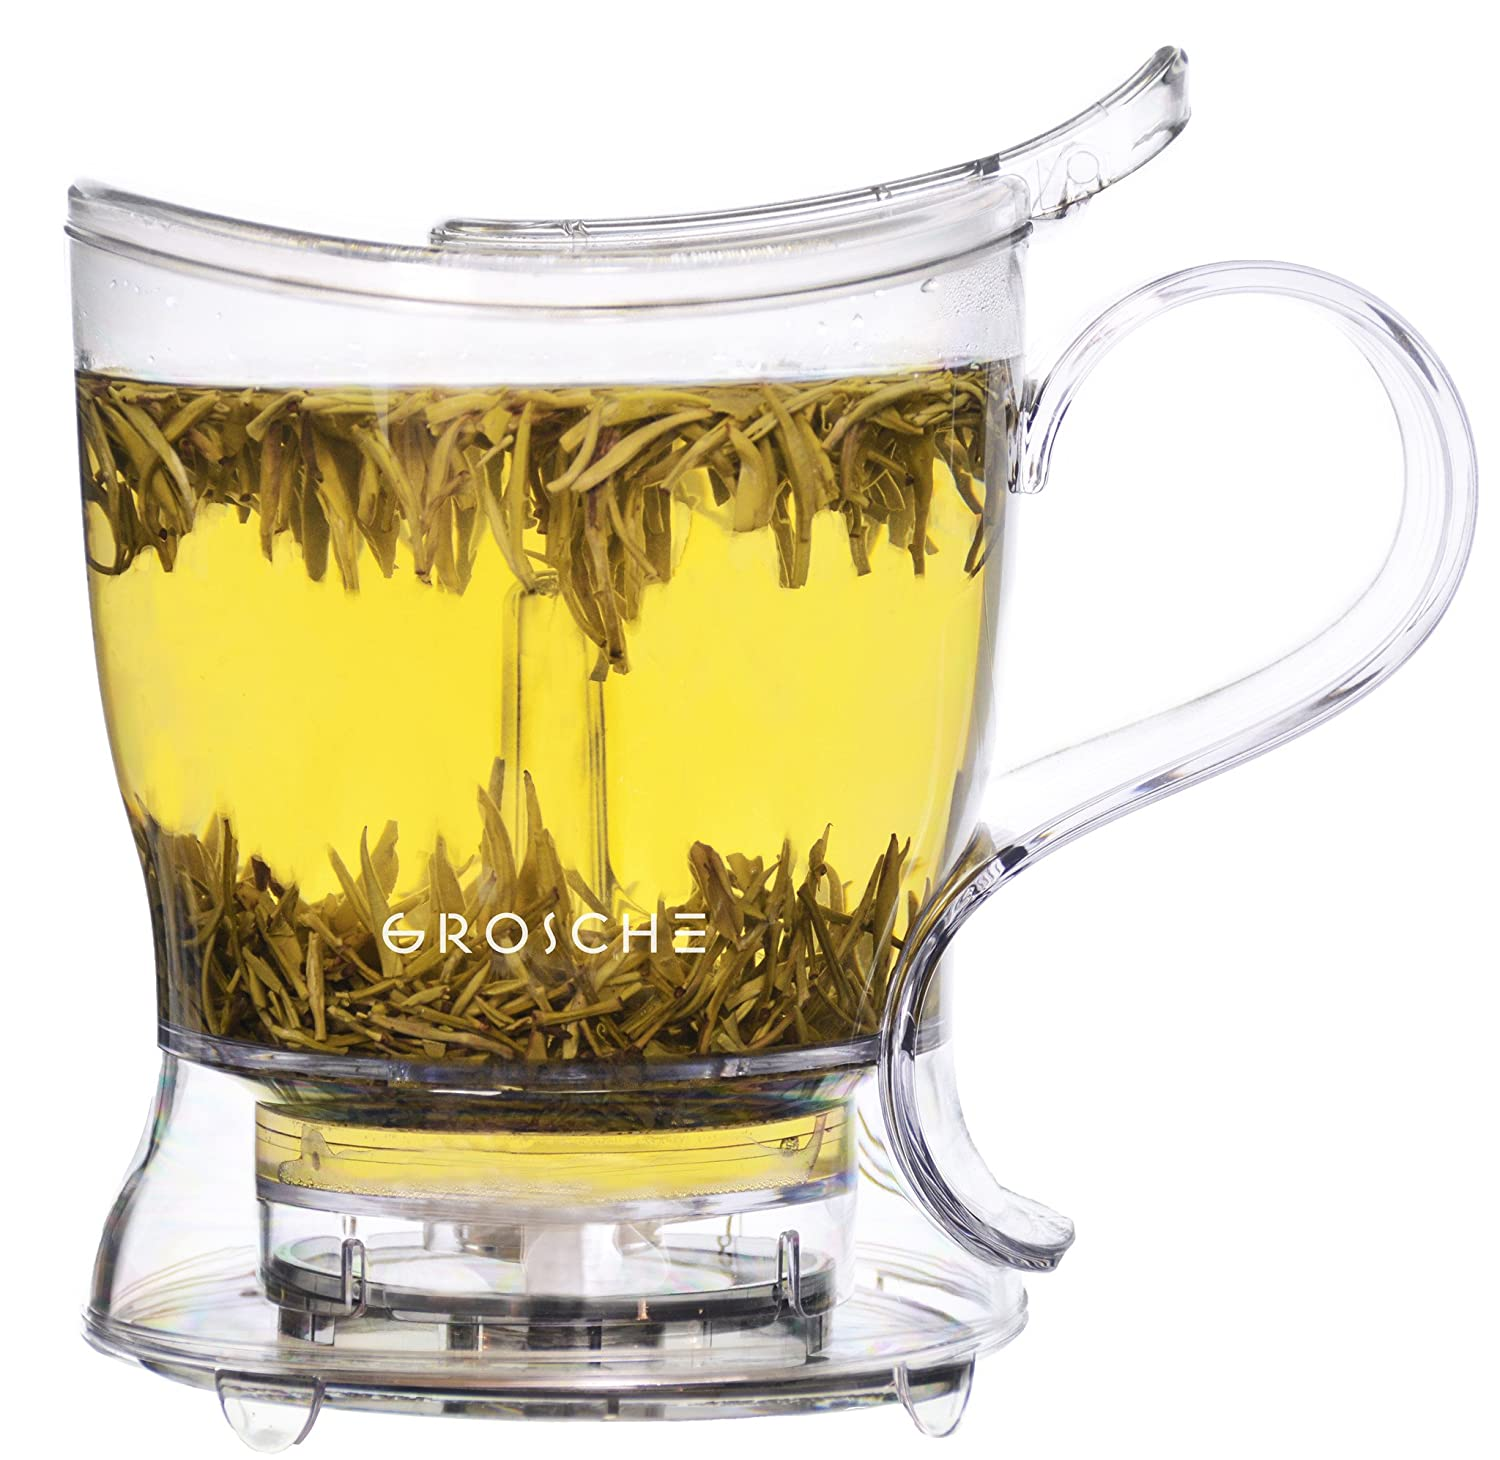 GROSCHE Aberdeen Tea Steeper, 1000 ml 34 oz, Teapot and Tea Infuser, BPA-Free & Food-safe Tritan